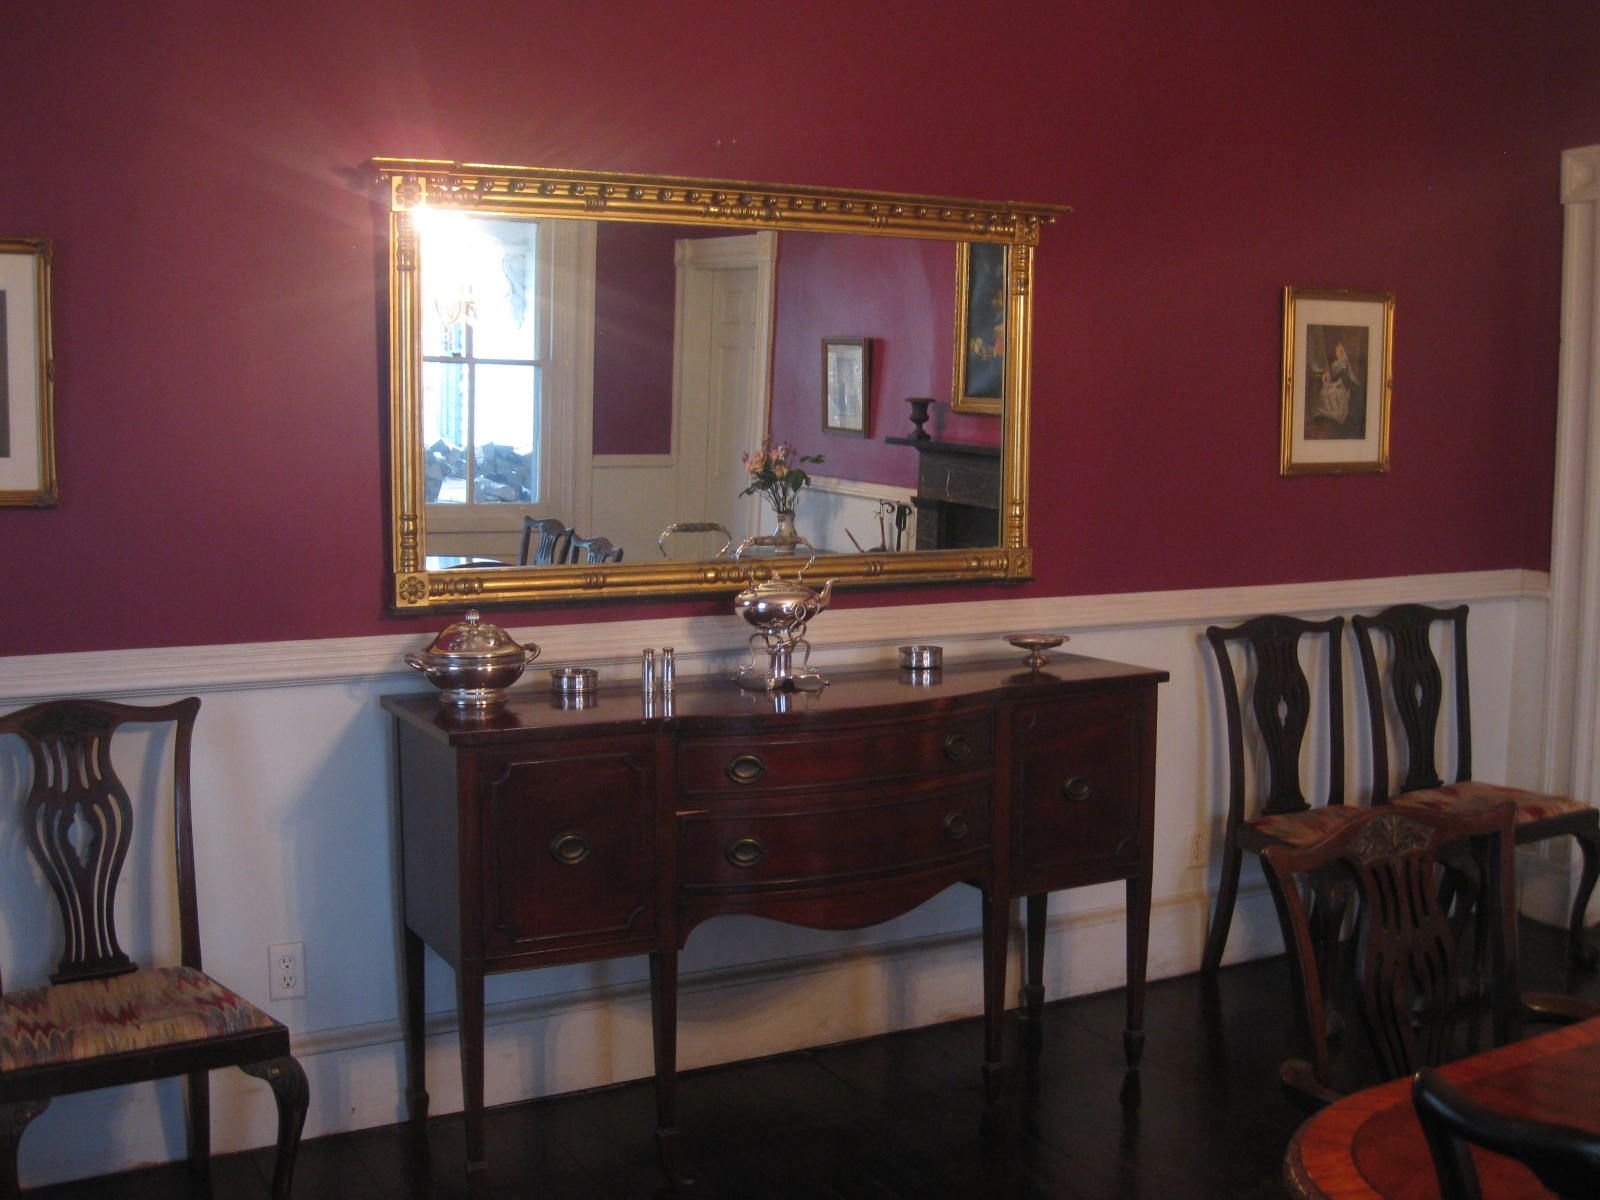 Dining Room Color Schemes Chair Rail painting+a+room+with+a+chair+rail | used a plum-colored paint for